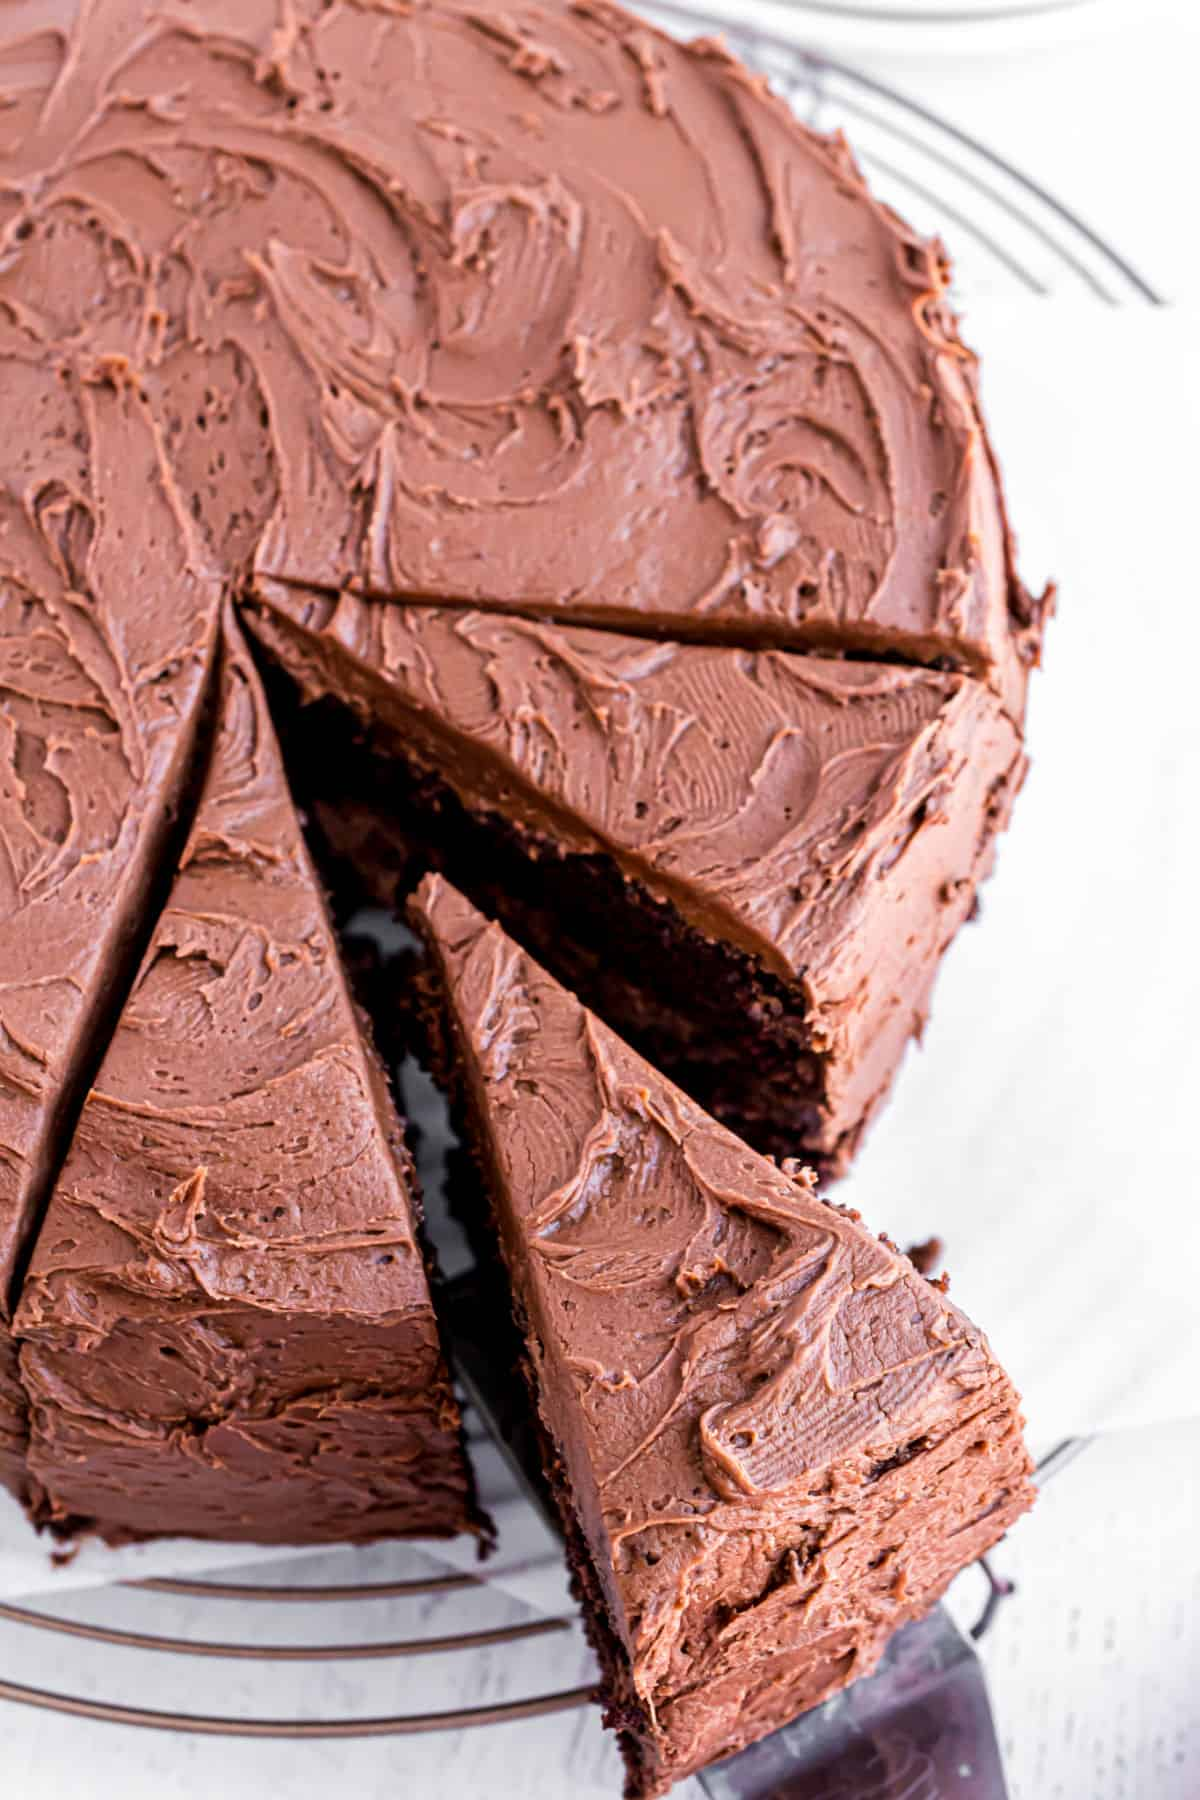 Whole chocolate layer cake with three slices cut and one being removed with a spatula.